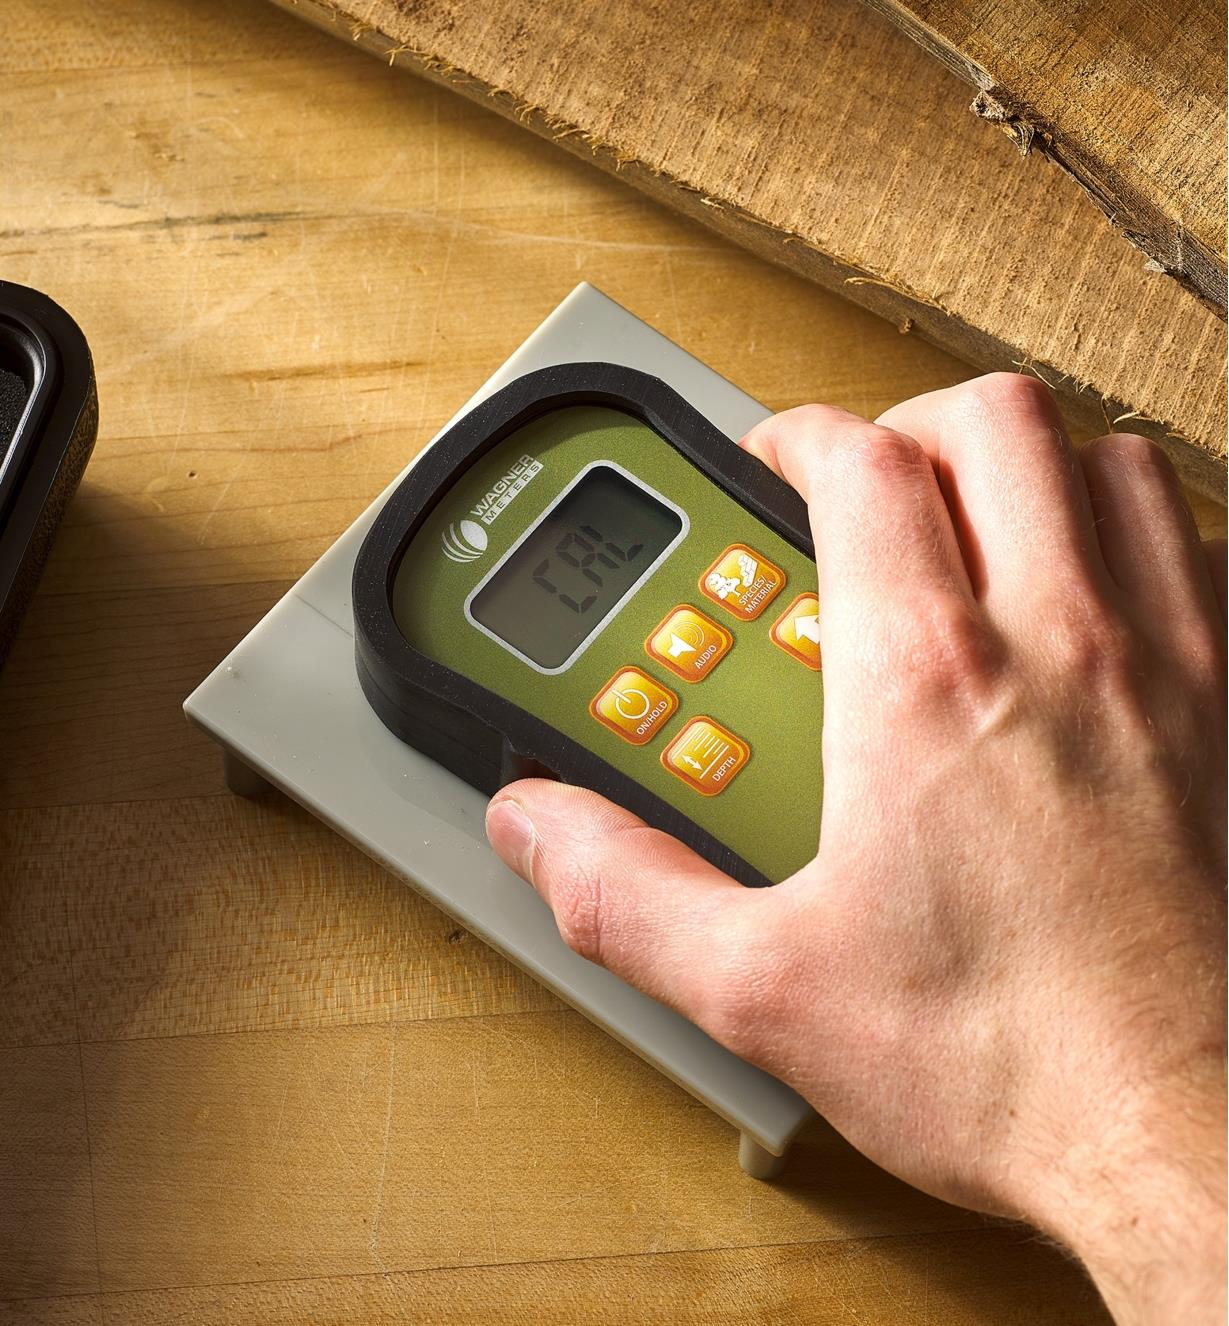 A Wagner Orion 930 dual depth moisture meter is placed on a calibrator